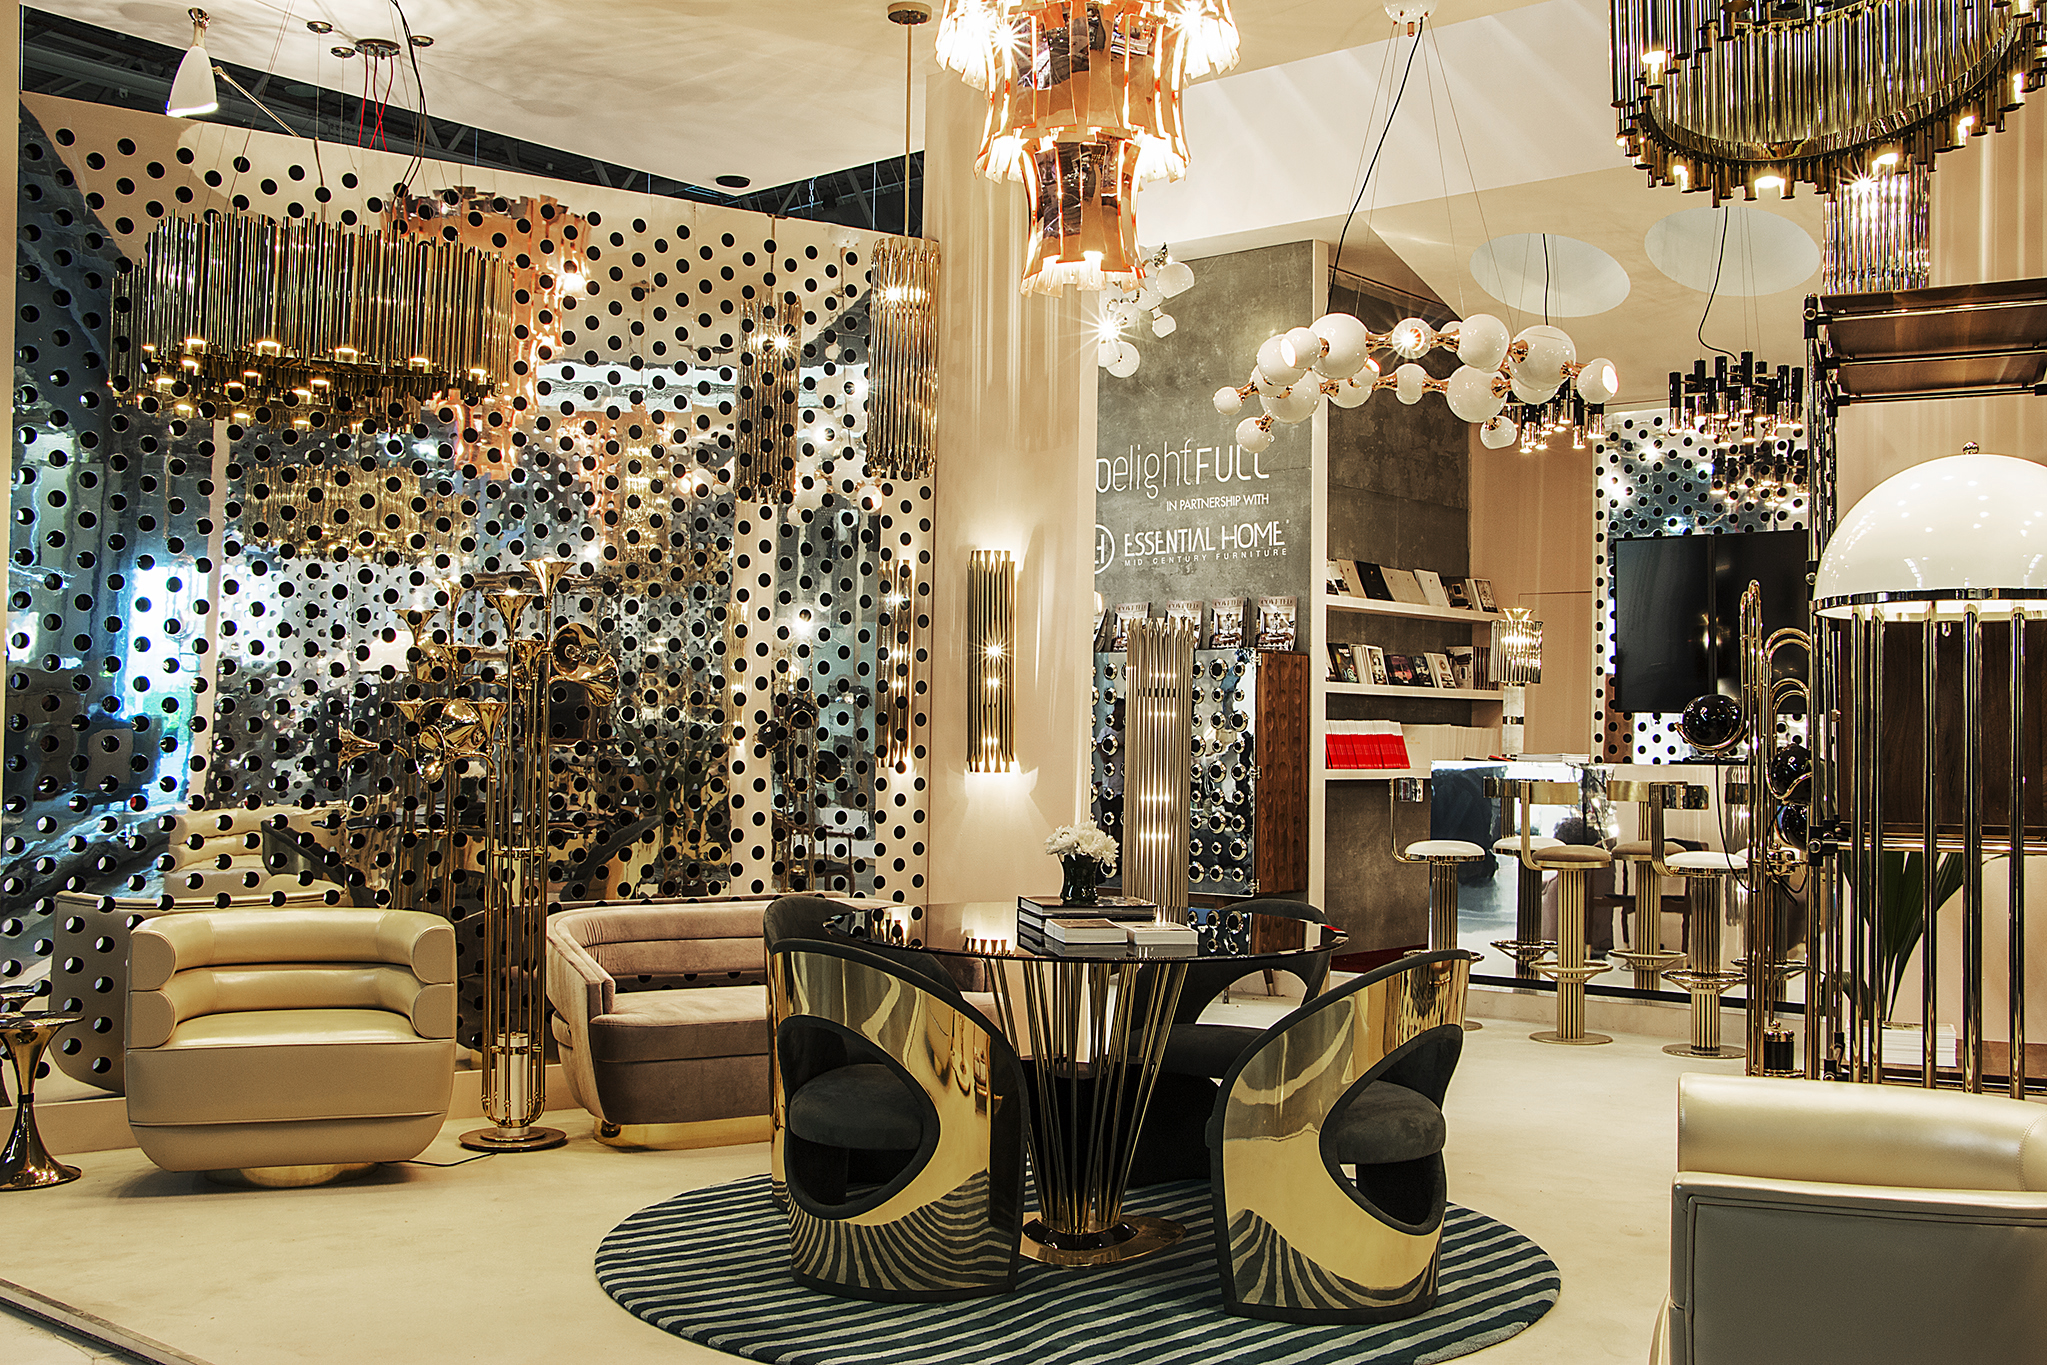 Get Your Bags Ready For Paris, Maison Et Objet 2018 Is Around The Corner maison et objet 2018 Get Your Bags Ready, Maison Et Objet 2018 Is Around The Corner Get Your Bags Ready For Paris Maison Et Objet 2018 Is Around The Corner